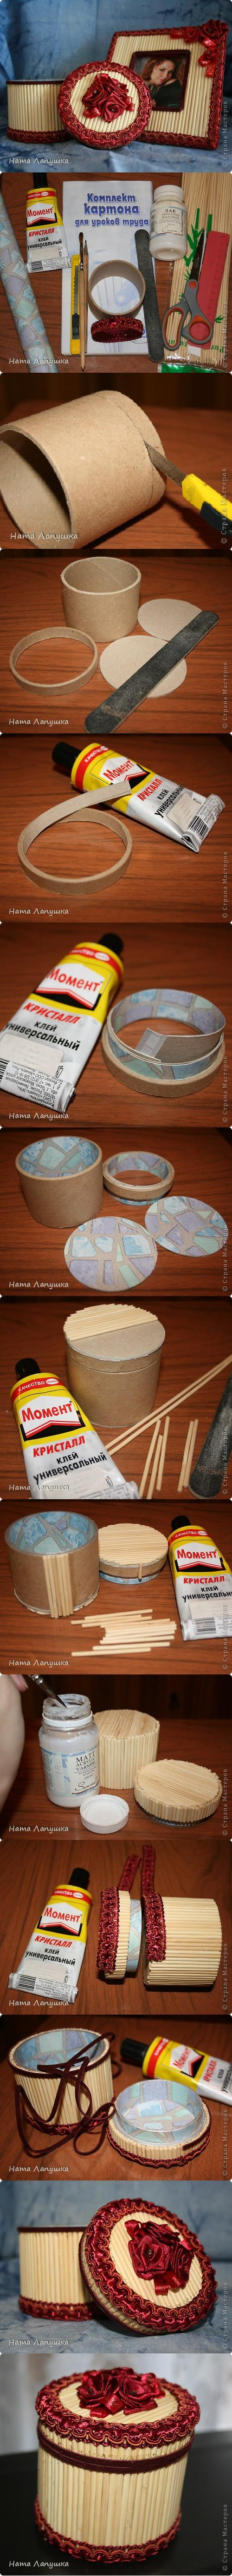 How to make Beautiful Round storage Boxes step by step DIY tutorial instructions